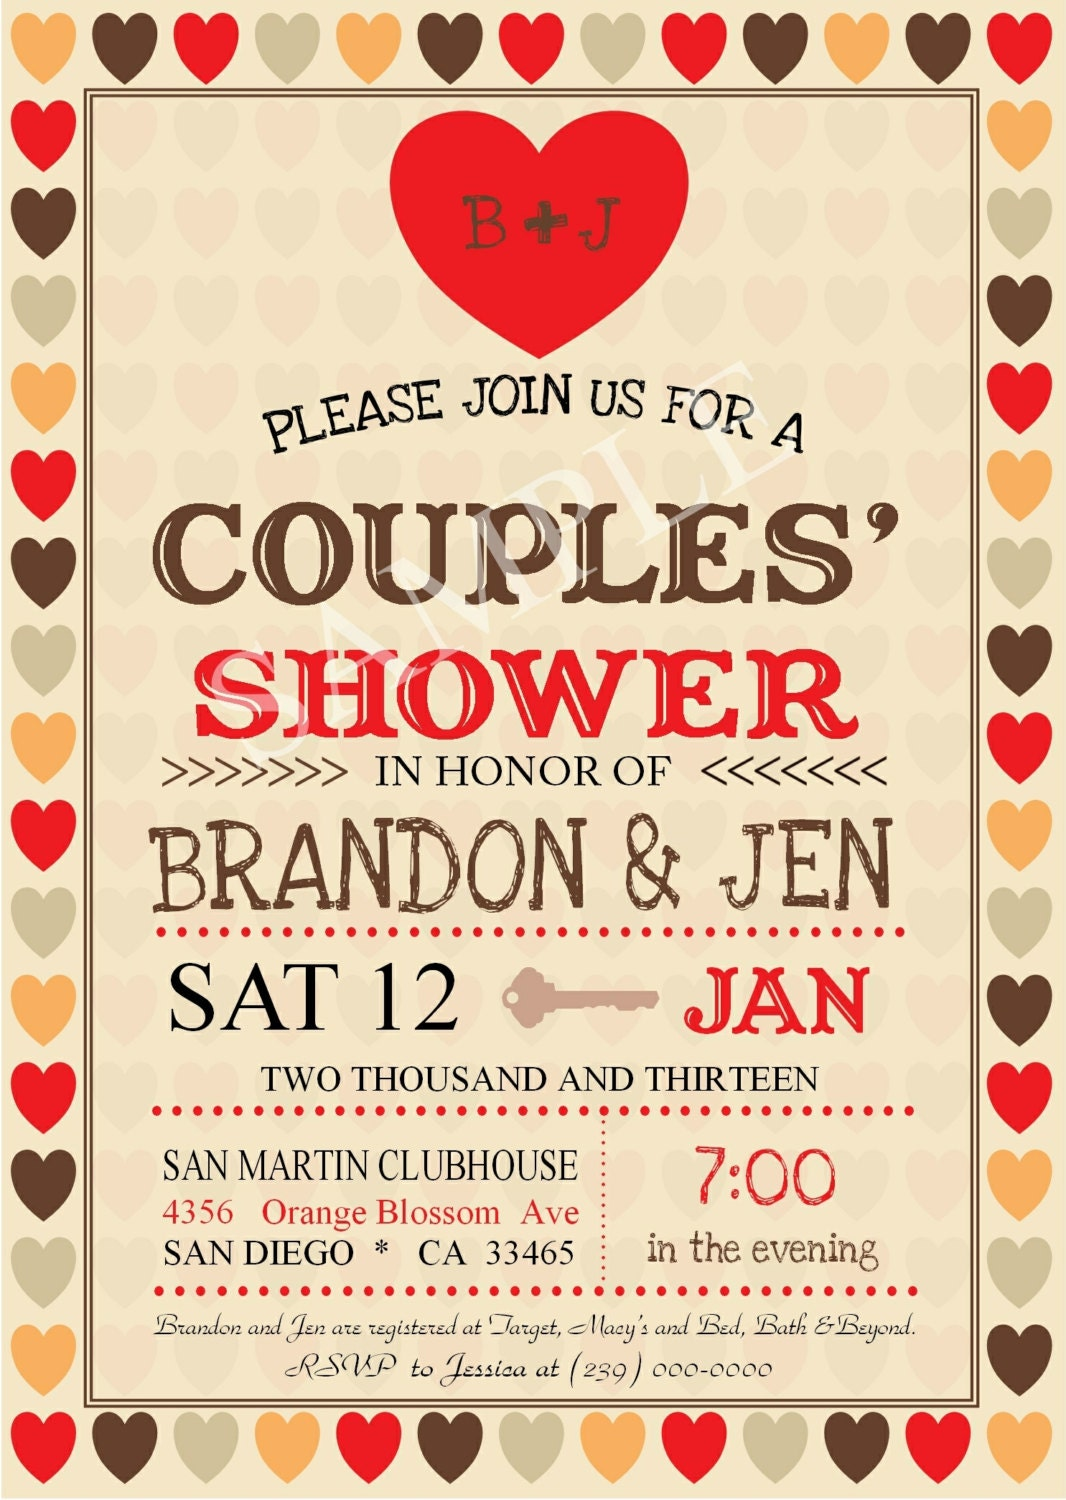 Couples Wedding Shower Jack & Jill Digital Invitation